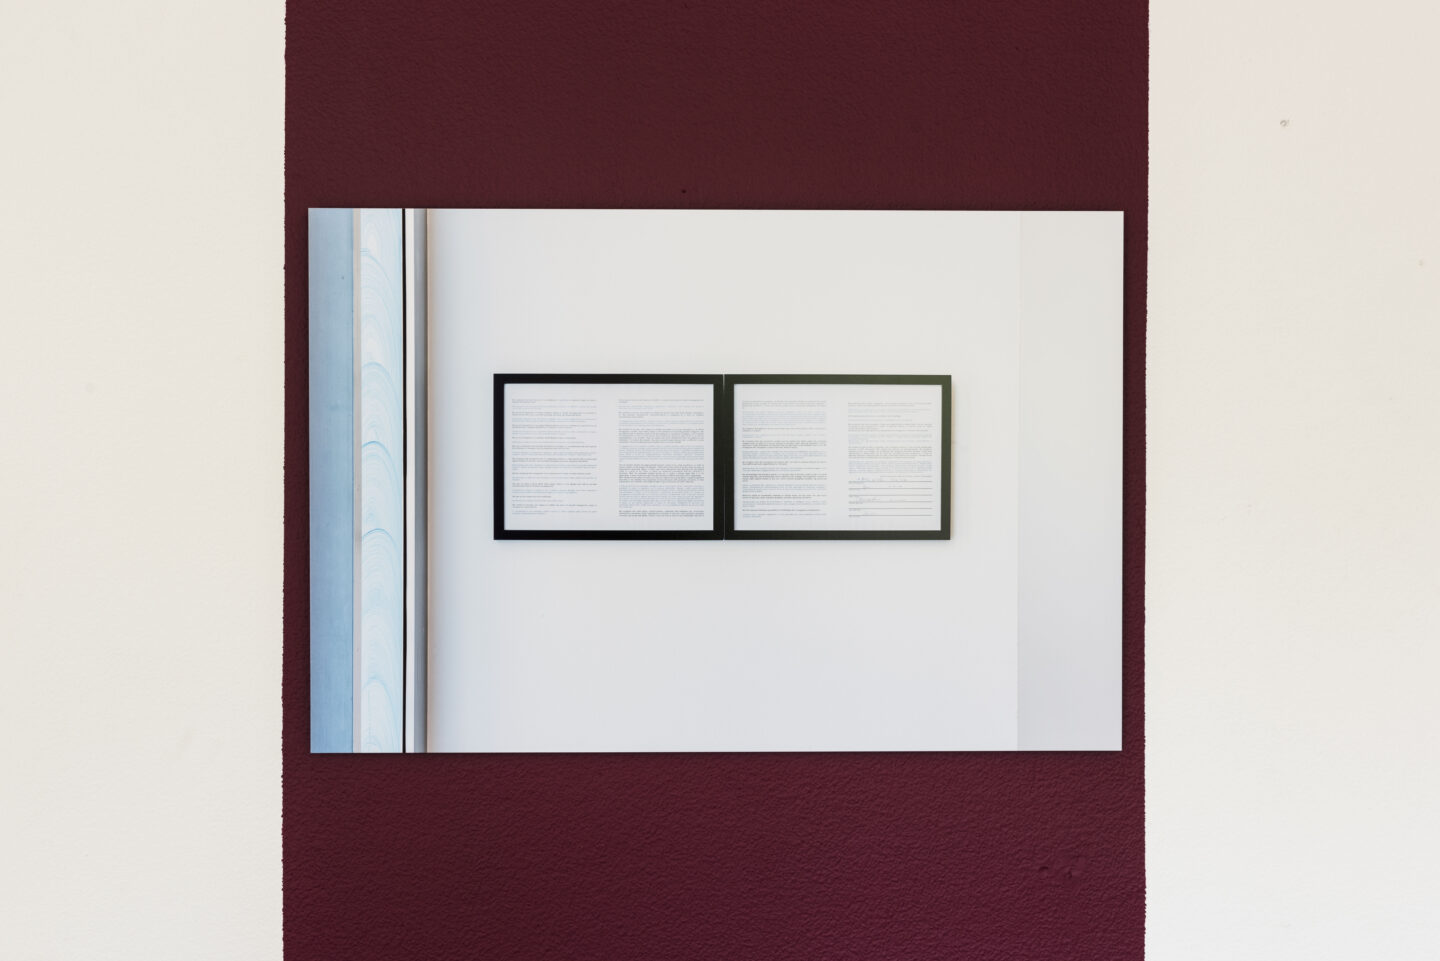 Exhibition View Bea Schlingelhoff Soloshow «soft mime win; view on softmimewin IV (Milan, Istituto Svizzero), 2020, documentation photo by Giulio Boem, print on aluminum, 90x60 cm, cardinal wall paint, variable dimensions» at Cherish, Geneva, 2020 / Photo: James Bantone / Courtesy: the artist and Cherish